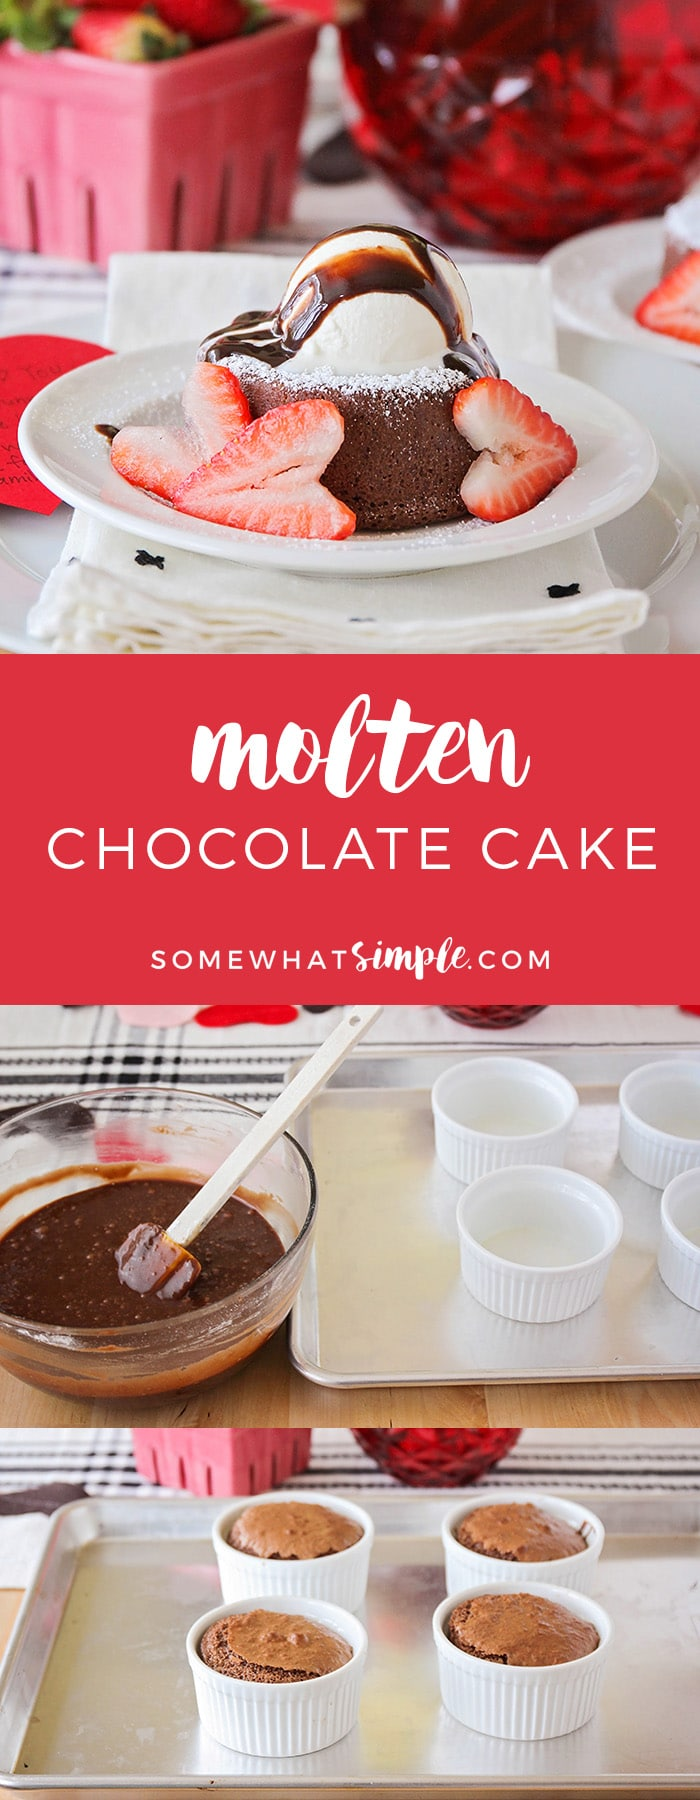 Planning a romantic dessert date night is so easy and fun! Elegant decorations and a luscious molten chocolate lava cake recipe will make it a night to remember.